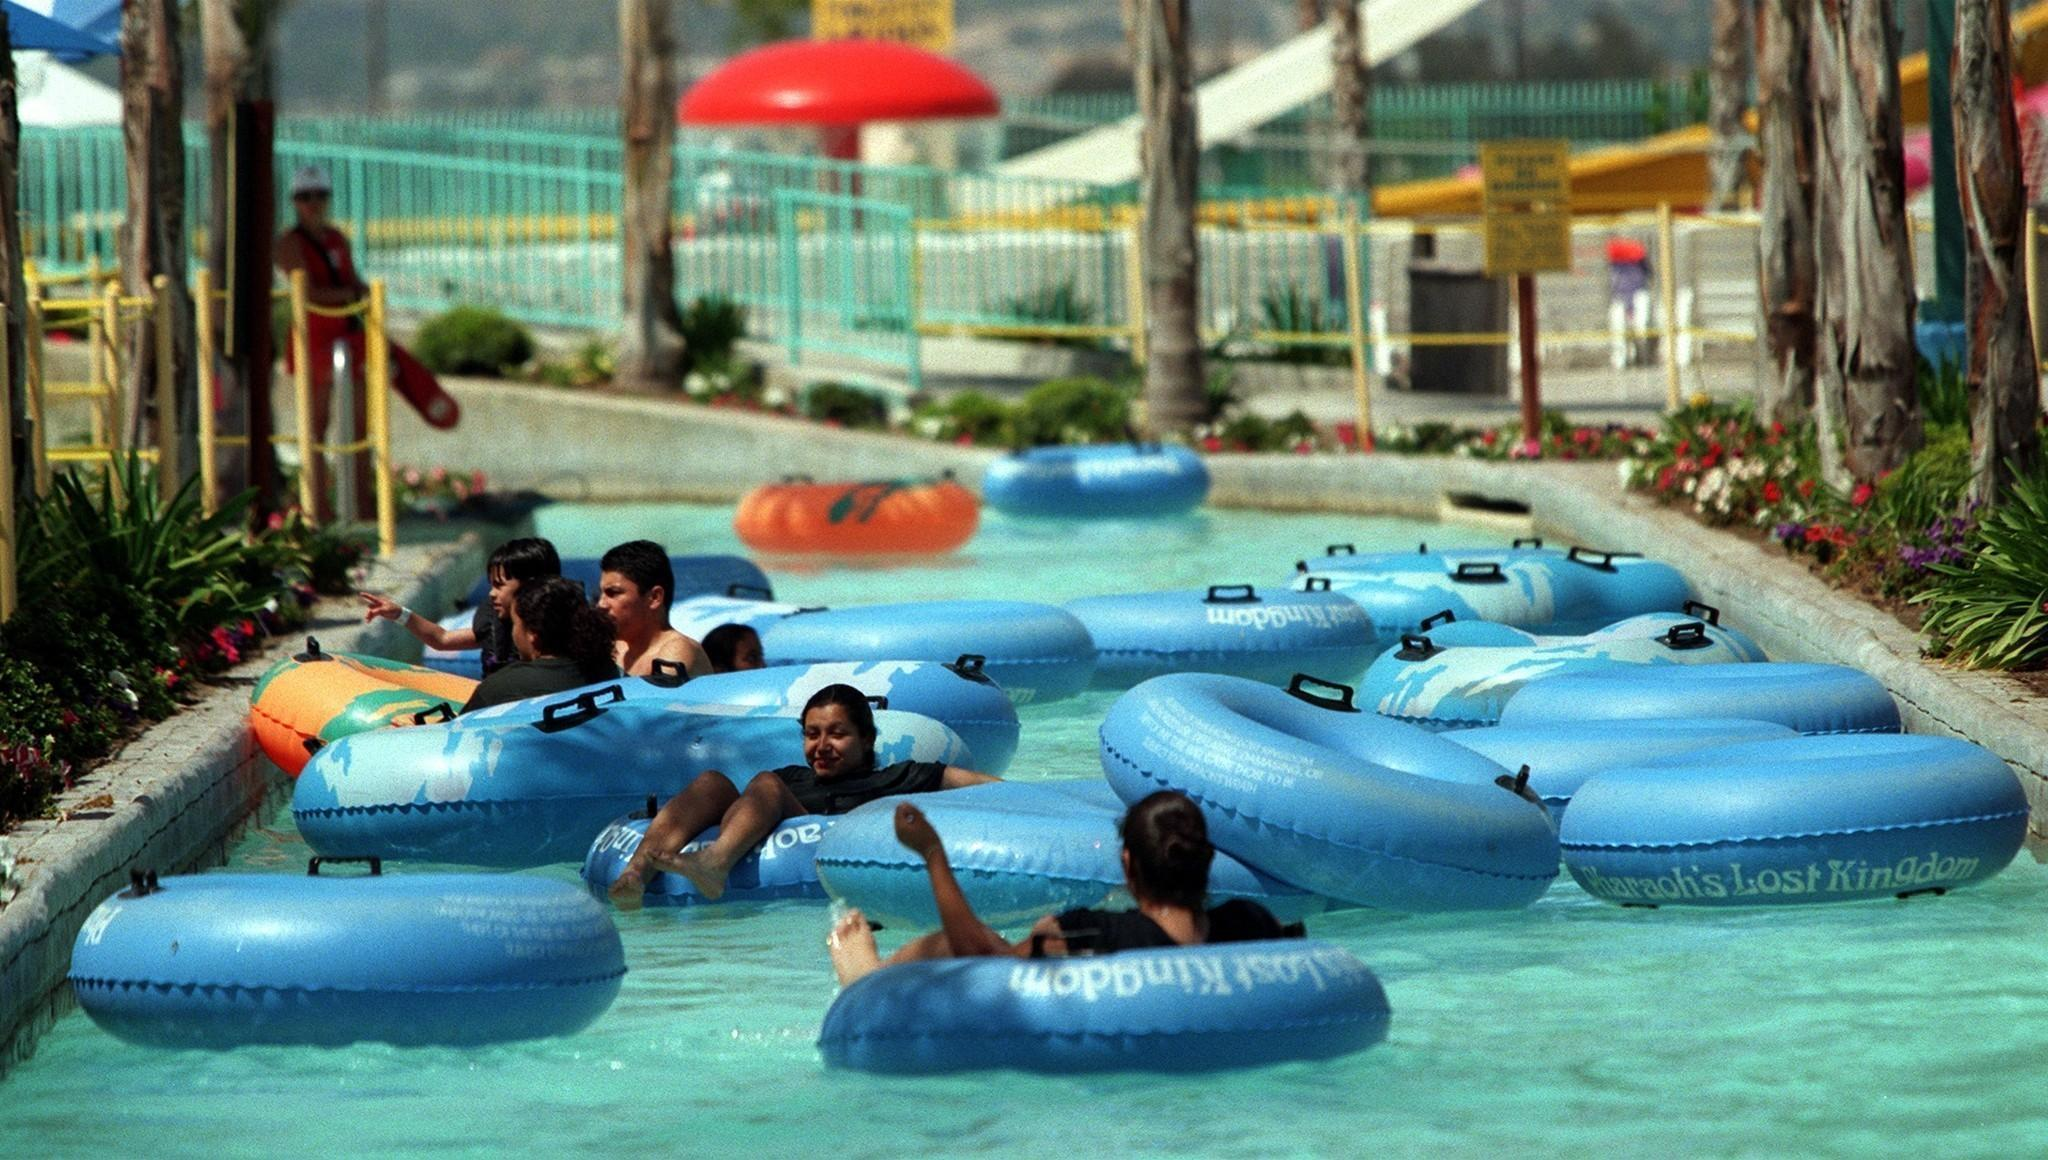 Cdc Study Nearly 8 In 10 Public Swimming Pools Failed Routine Safety Inspections La Times